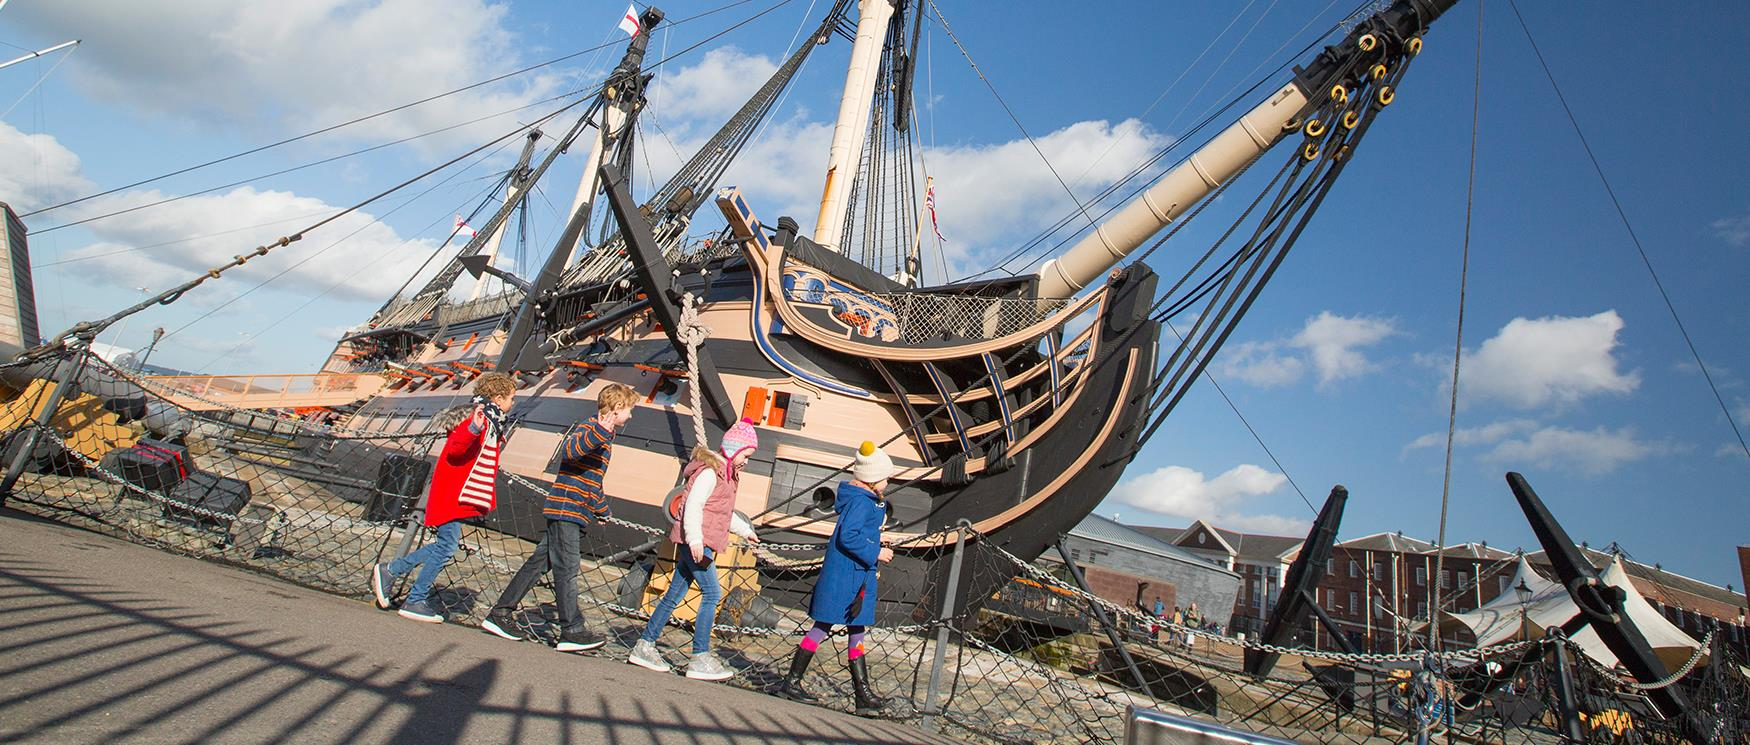 Military Attractions in Hampshire - Portsmouth Historic Dockyard